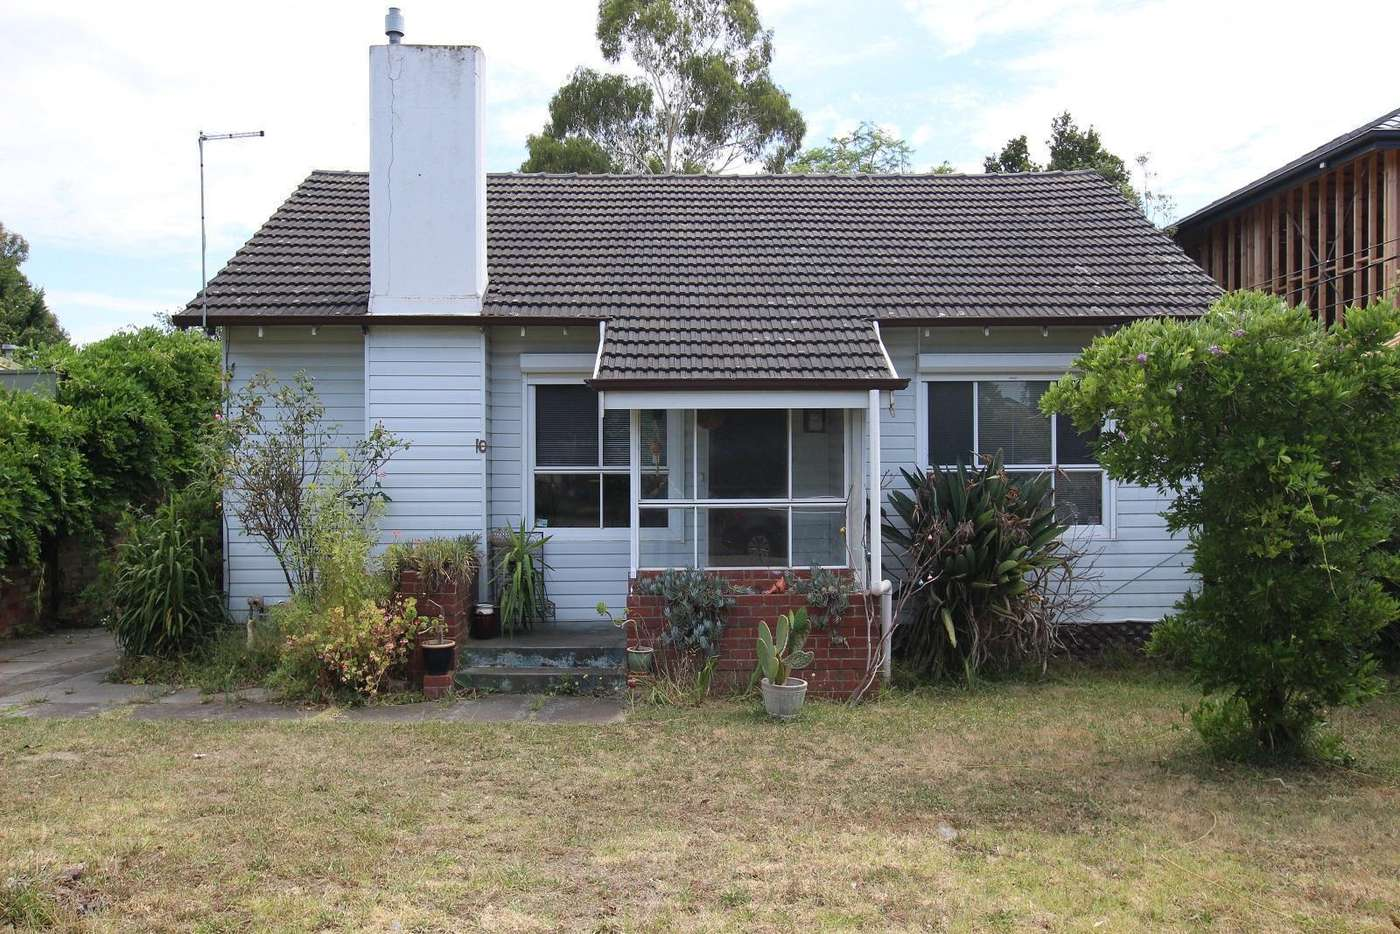 Main view of Homely house listing, 10 Foley Avenue, Preston VIC 3072